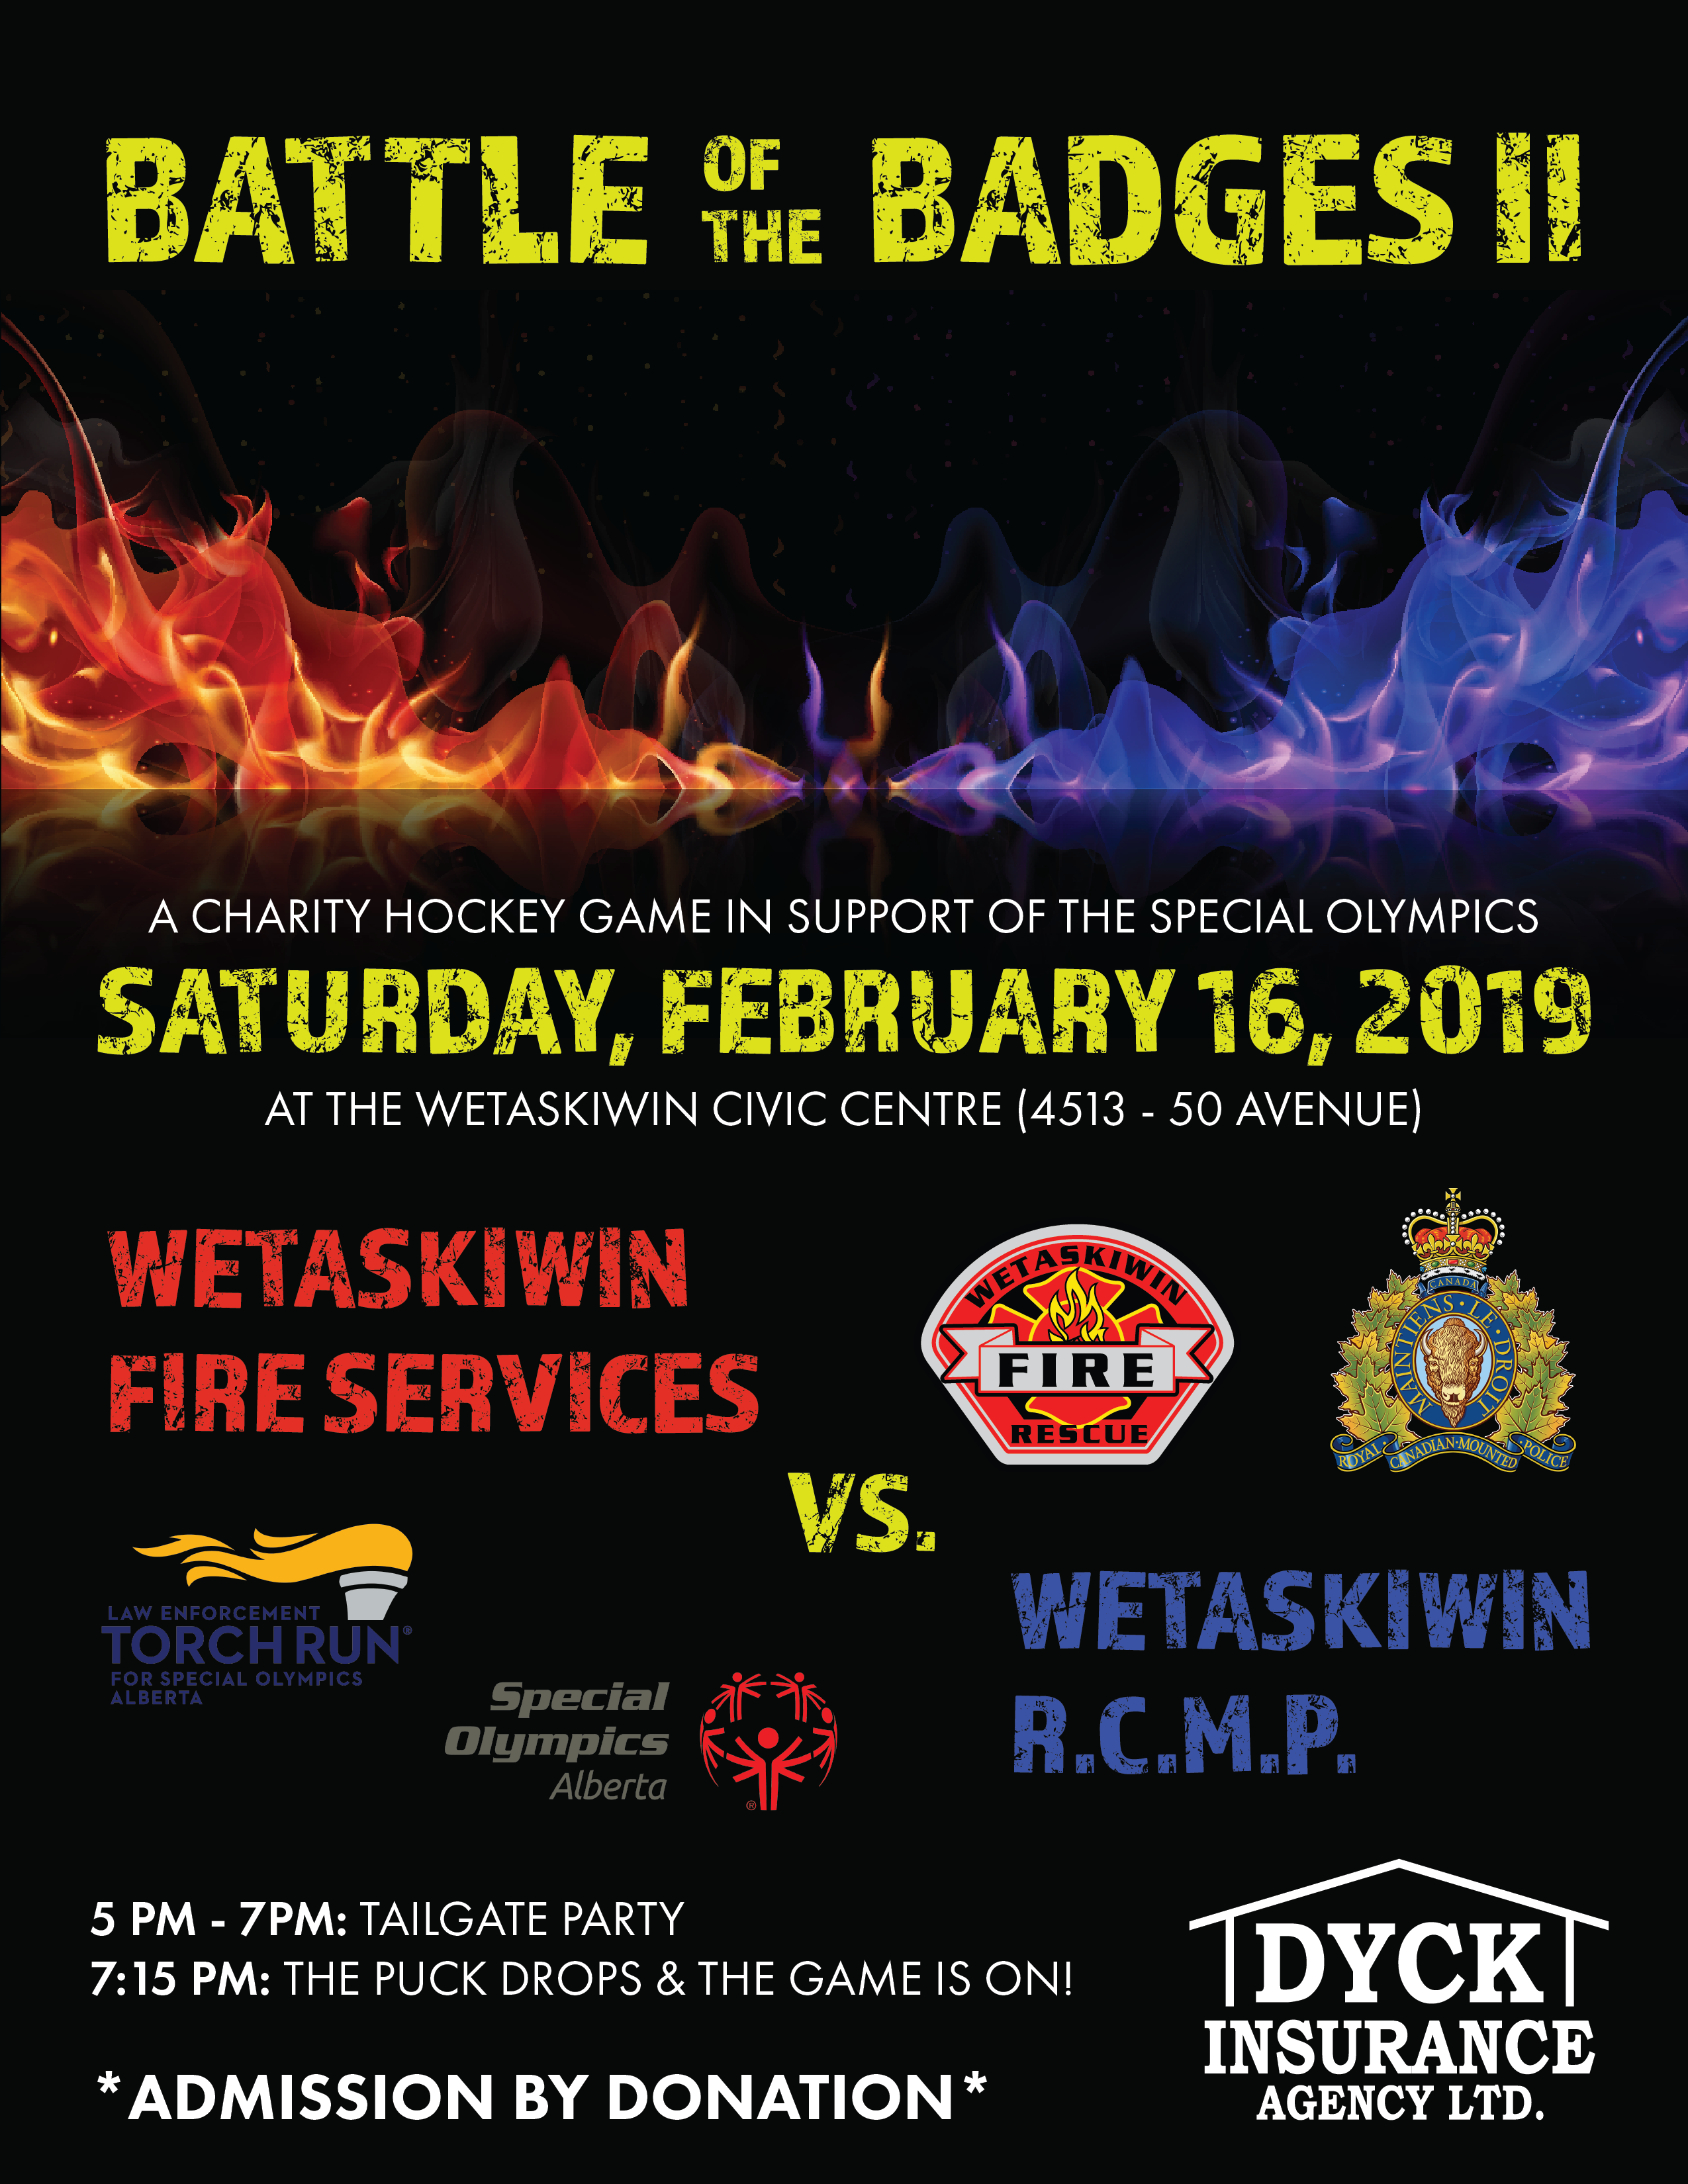 Battle of the Badges Game 2019